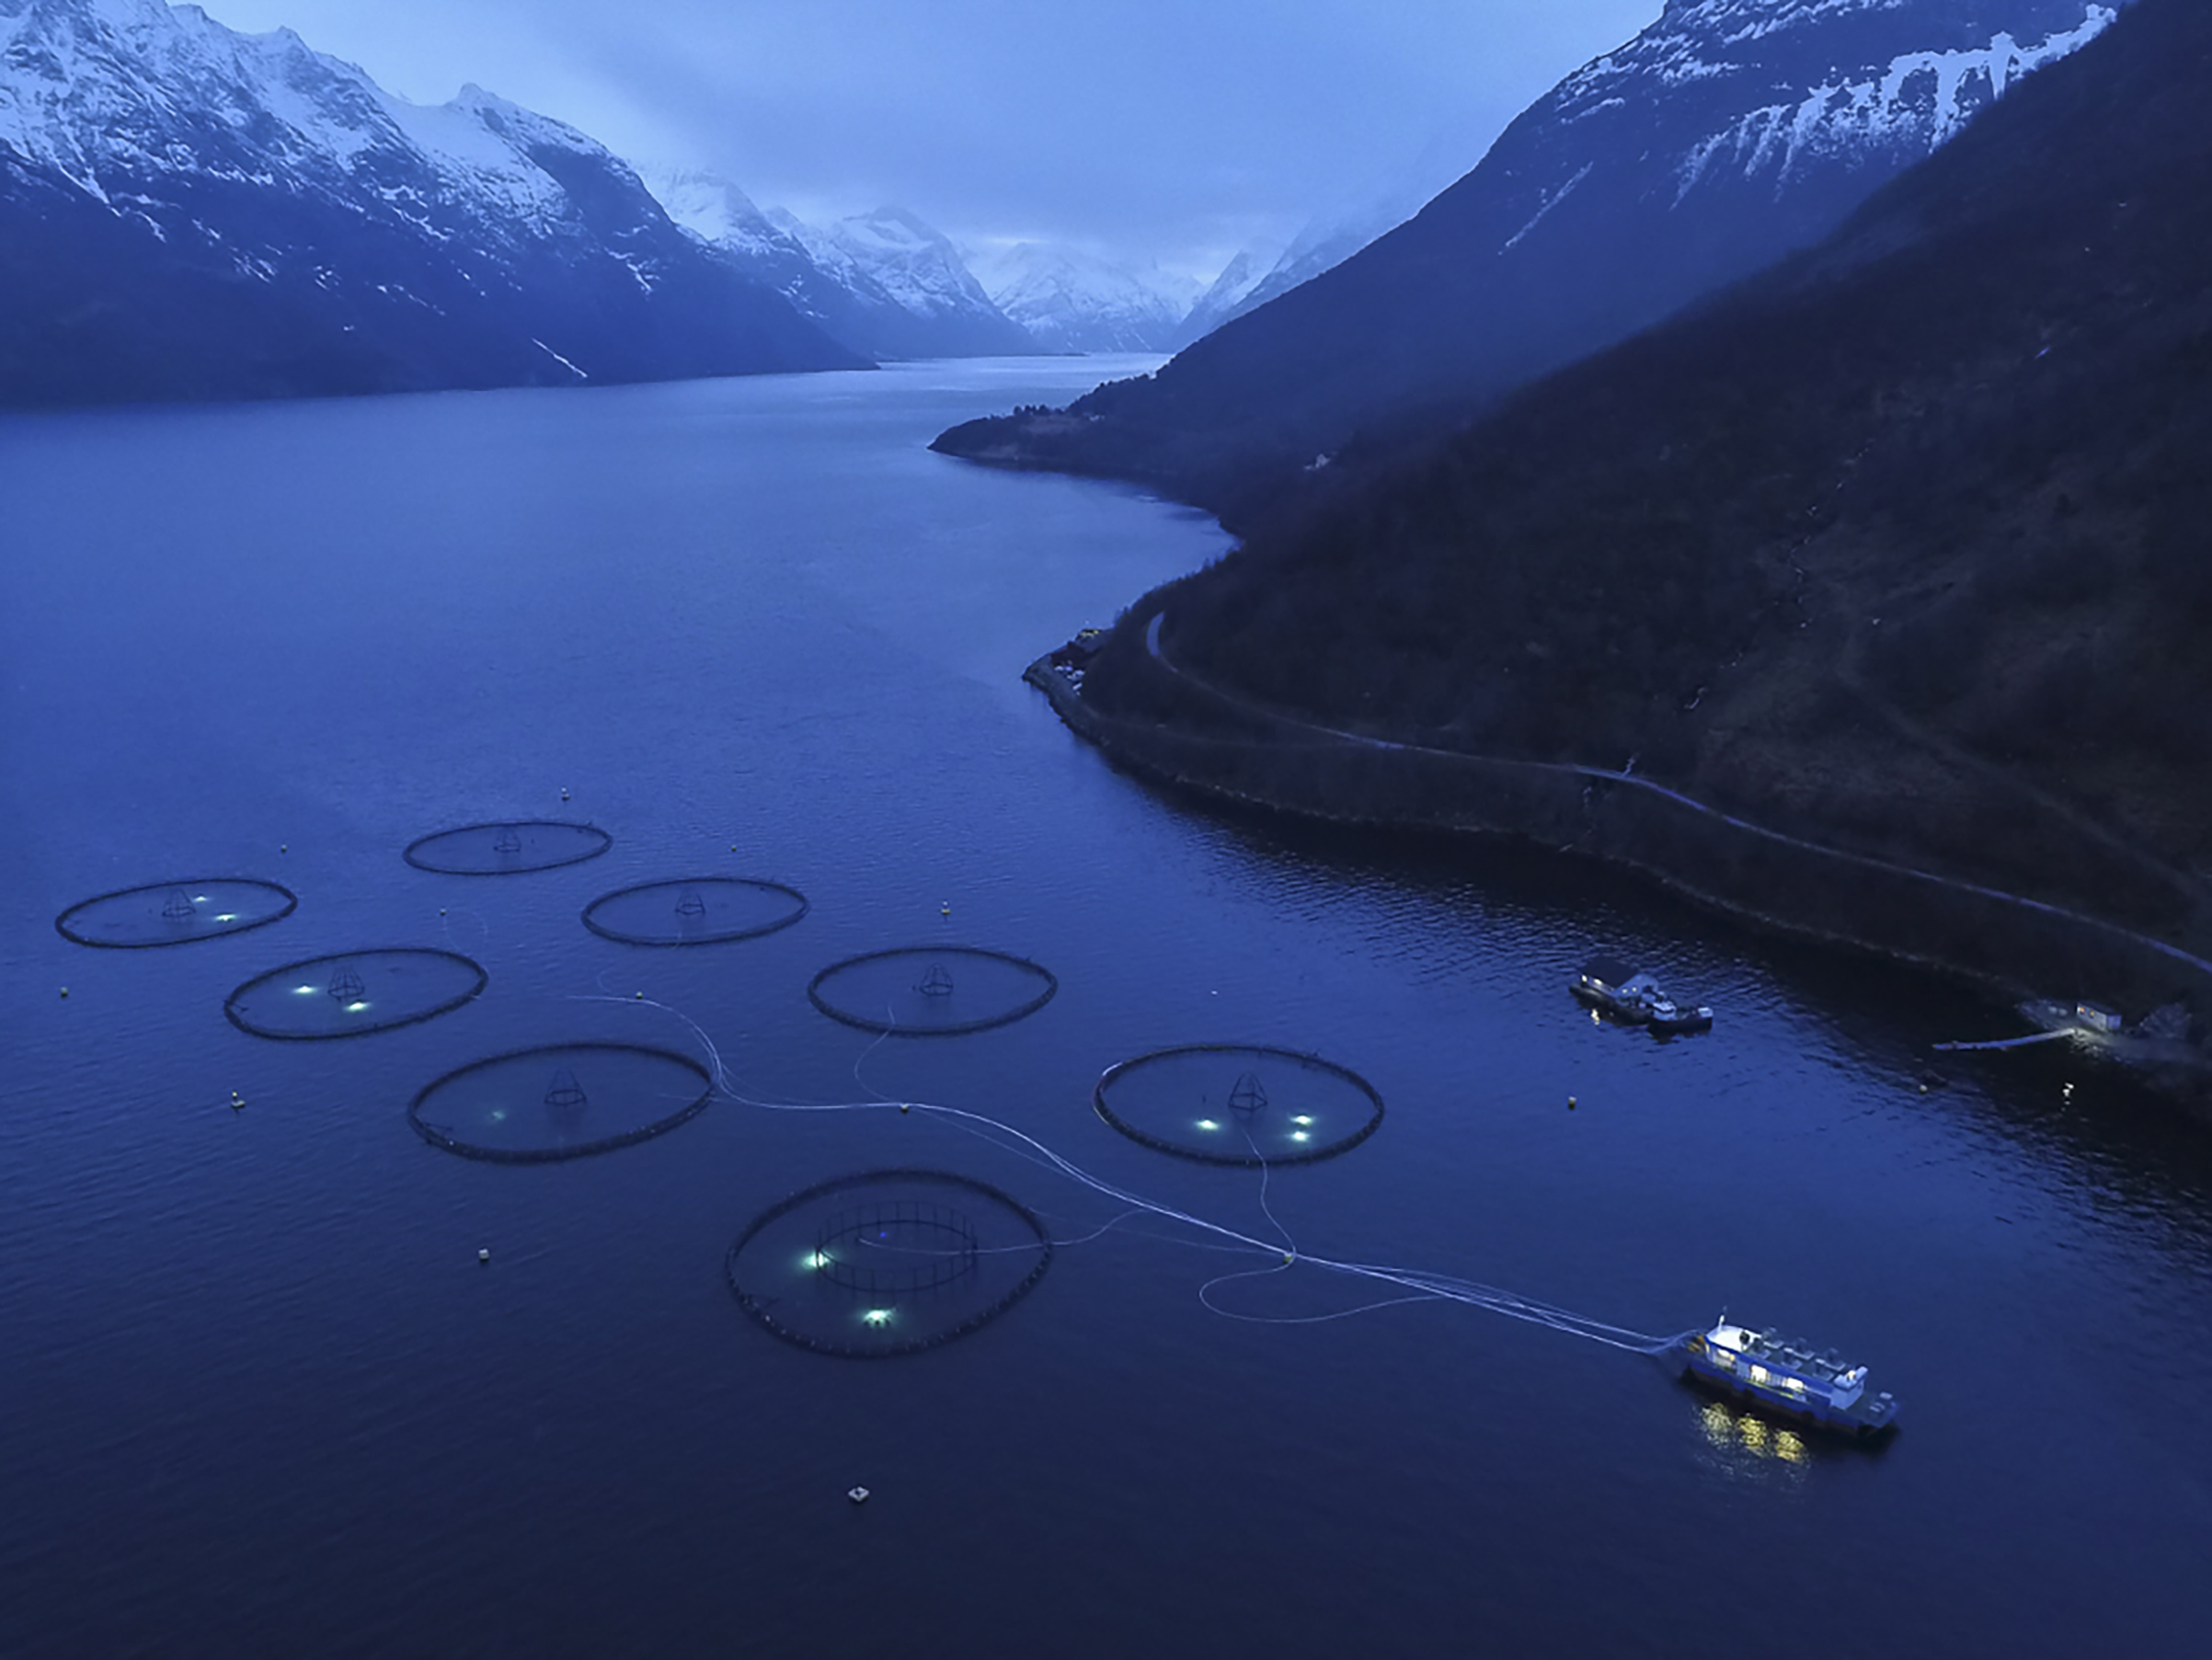 Sagelva salmon farm, on Hjorrund Fjord, with 200,000 atlantic salmon in each of eight pens. All the fish come from parents that were captured in the Vosso River (near Bergen) in 1960. The fish are fed from a barge via tubes that spray pellets of fish meal, fish oil, and soy beans into the water. I was told that no antibiotics are used, but some colorants are added to the food to give their flesh the orange color typical of wild salmon. The fish average 18 months in the pens and go from 200 grams to 5 kg, and gain approximately 1 kg of body weight for every 1 kg of food. The fjord is approx 70m deep underneath the pens, and goes to over 441m (?) in the center, allowing the fish excrement to become widely distributed with the tidal action, while the fjord protects the pens from wind and wave damage. After each generation of fish (18 months) the pens are left empty for six months to be cleaned and reduce the risk of diseases and parasites. The peaks beside the fjord rise to 1,564 M. This farm is owned and managed by Marine Harvest, the biggest grower of farmed salmon in the world, with approx. 25% of market share.